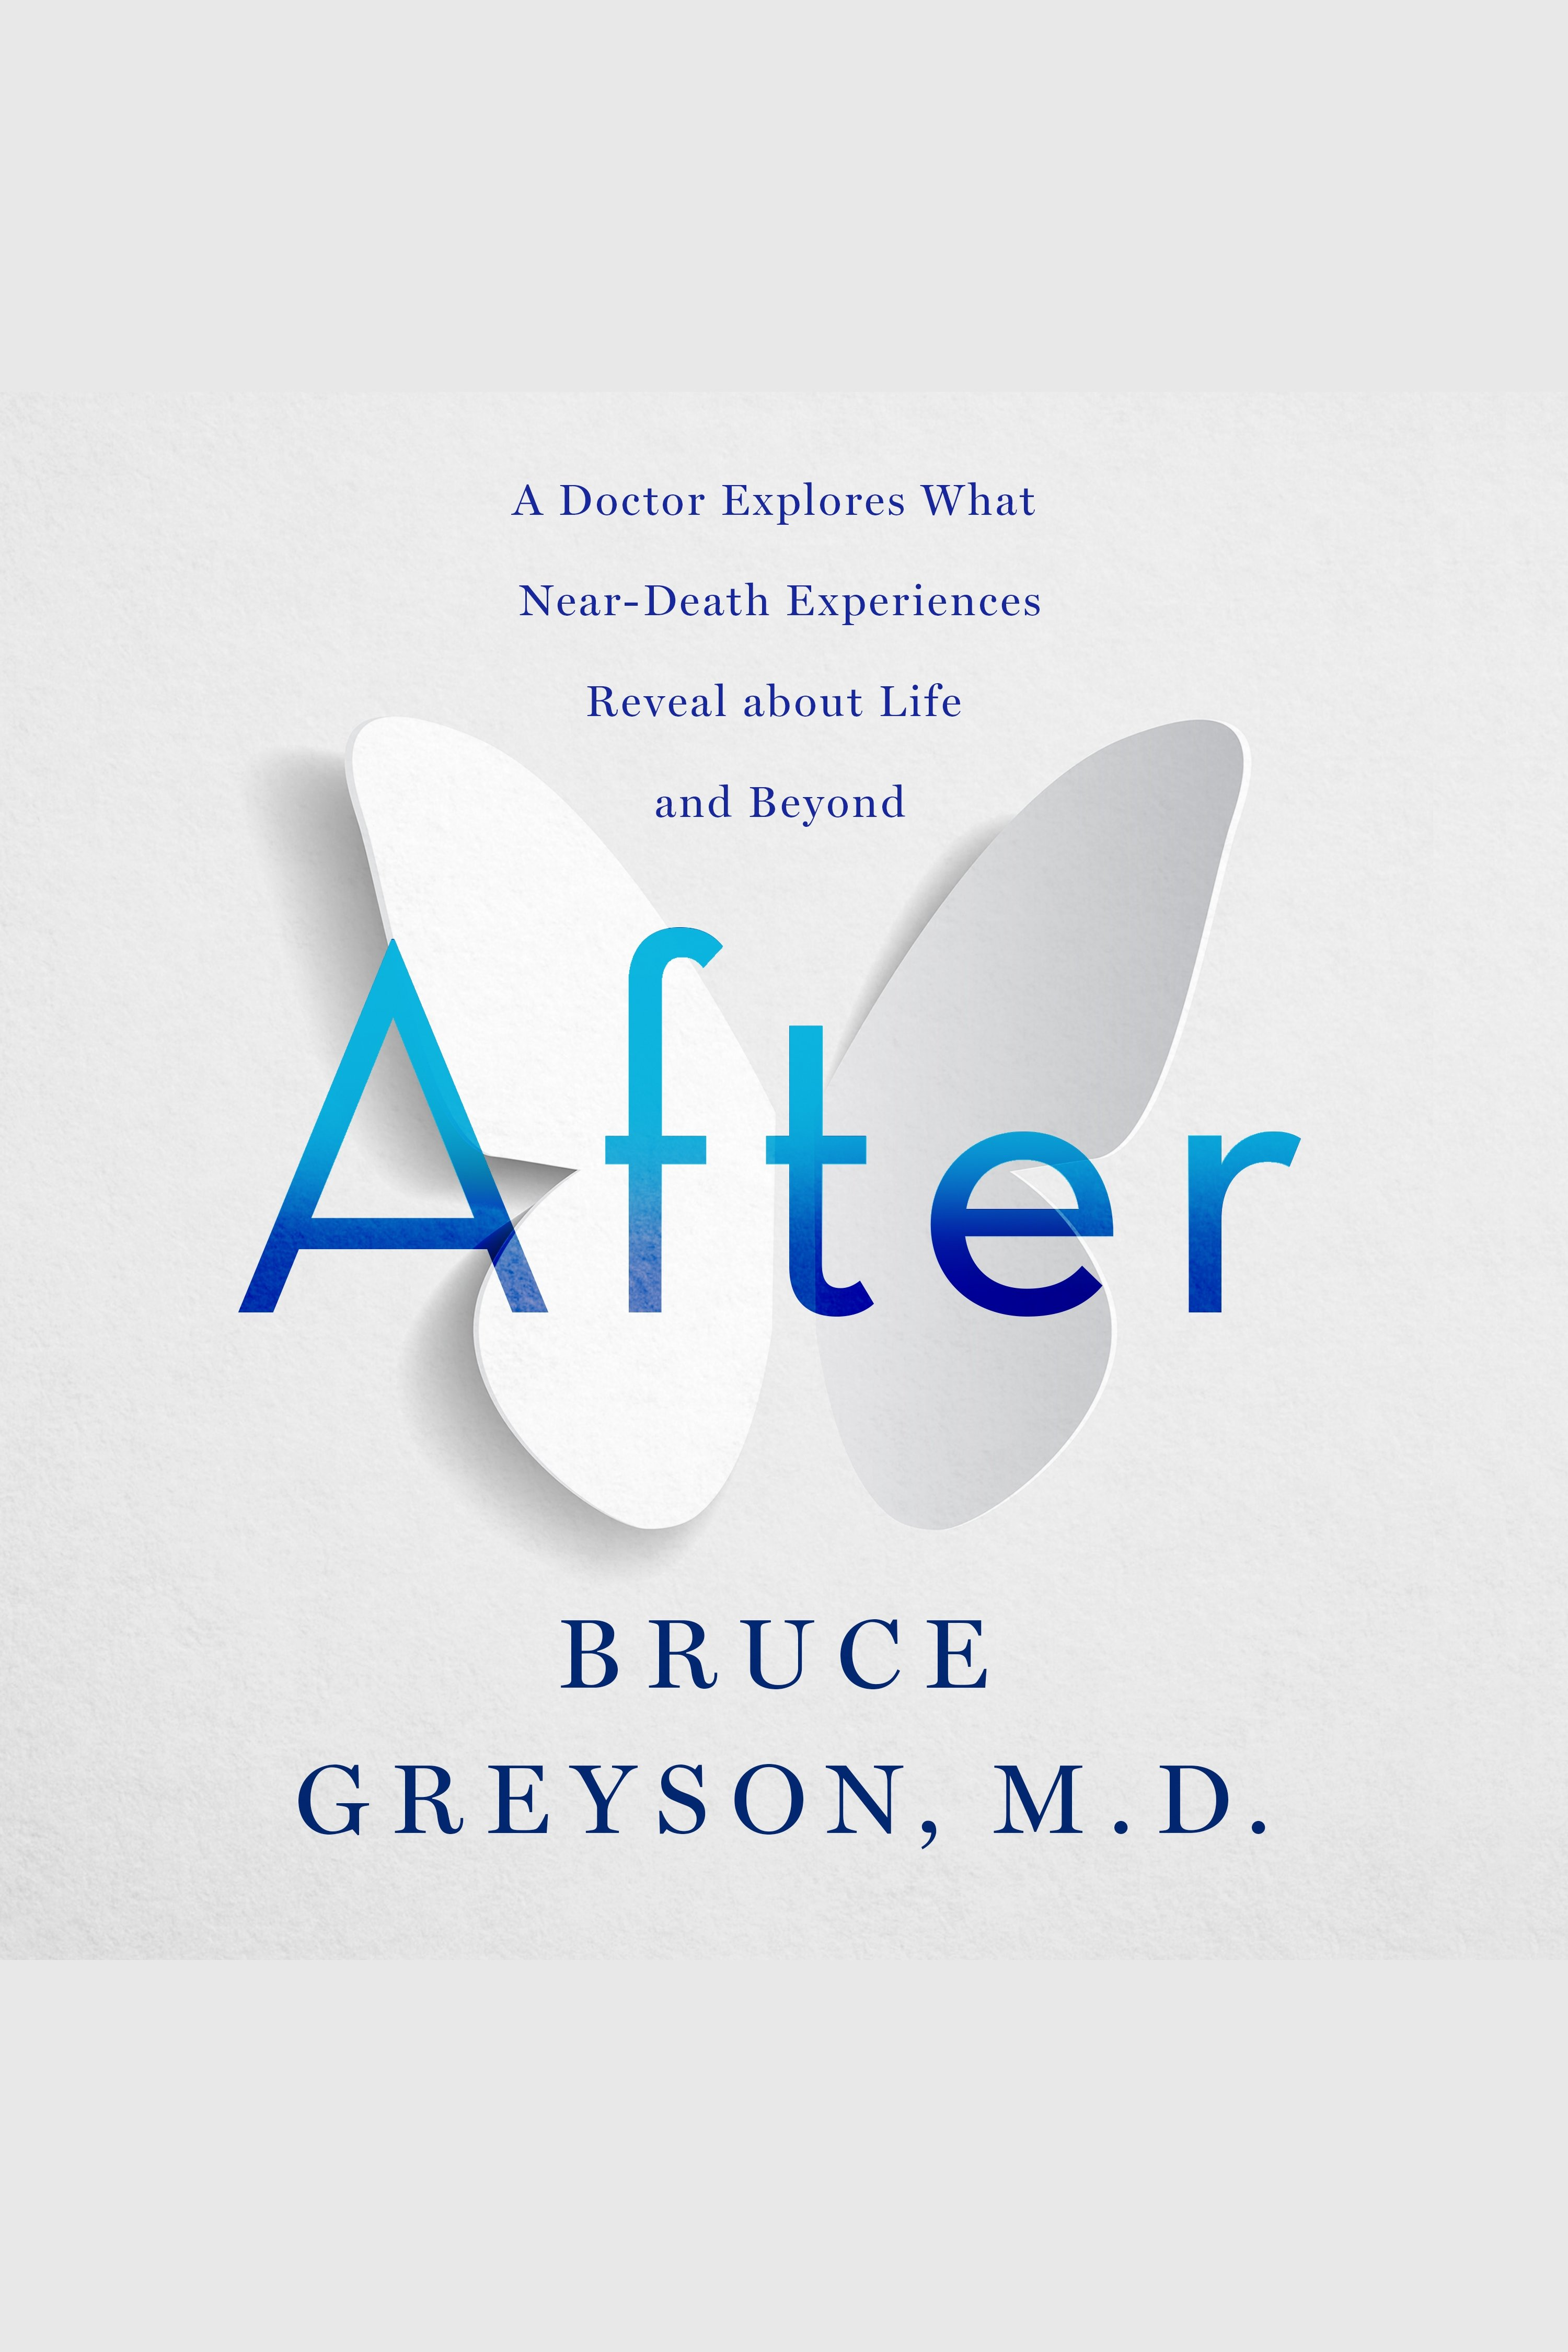 After A Doctor Explores What Near-Death Experiences Reveal about Life and Beyond